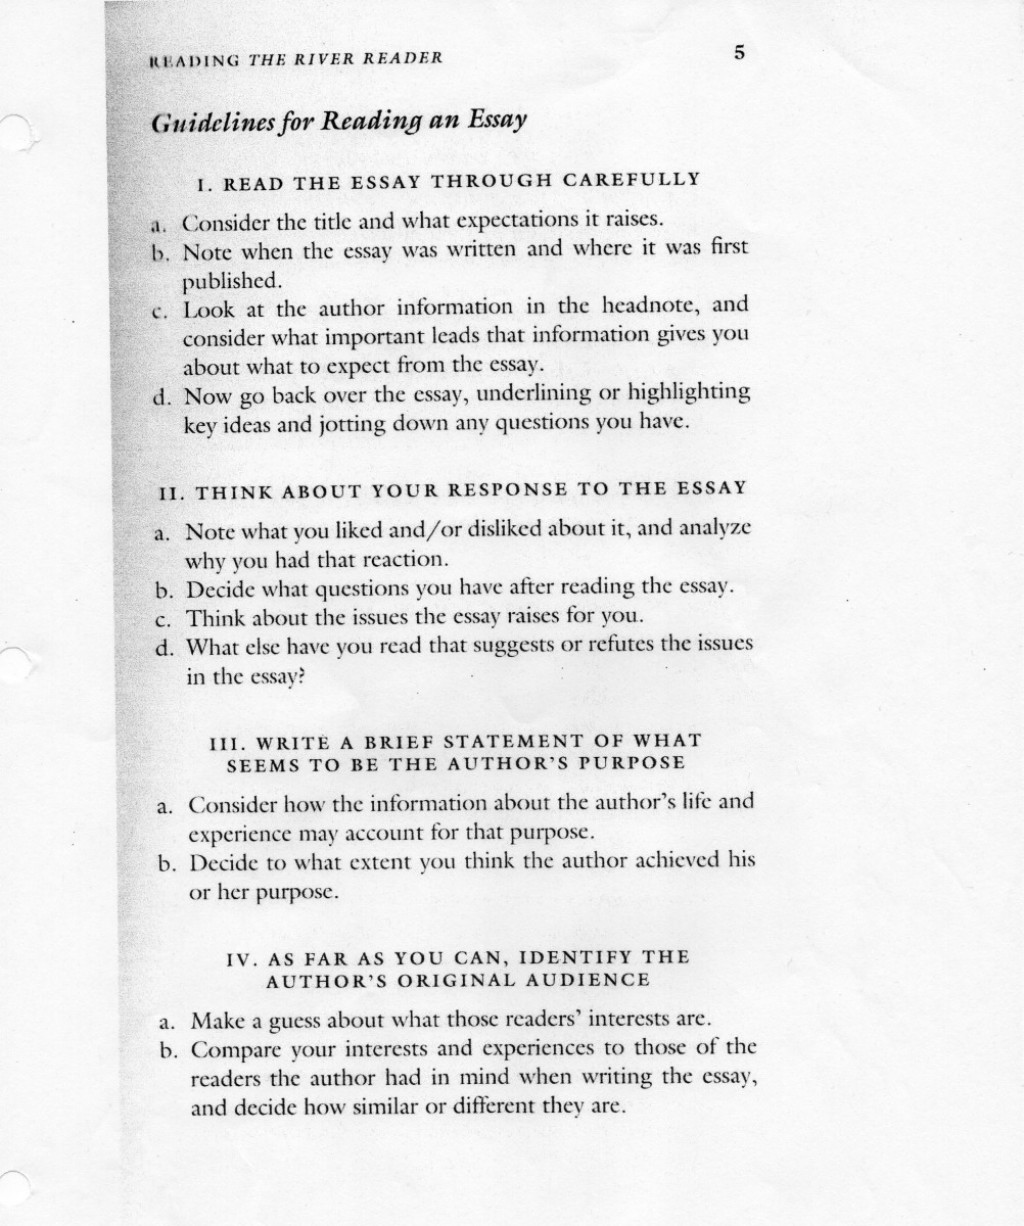 007 Mother Tongue Amy Tan Essay Guidelines For Reading An Wondrous Questions Analysis Summary Large